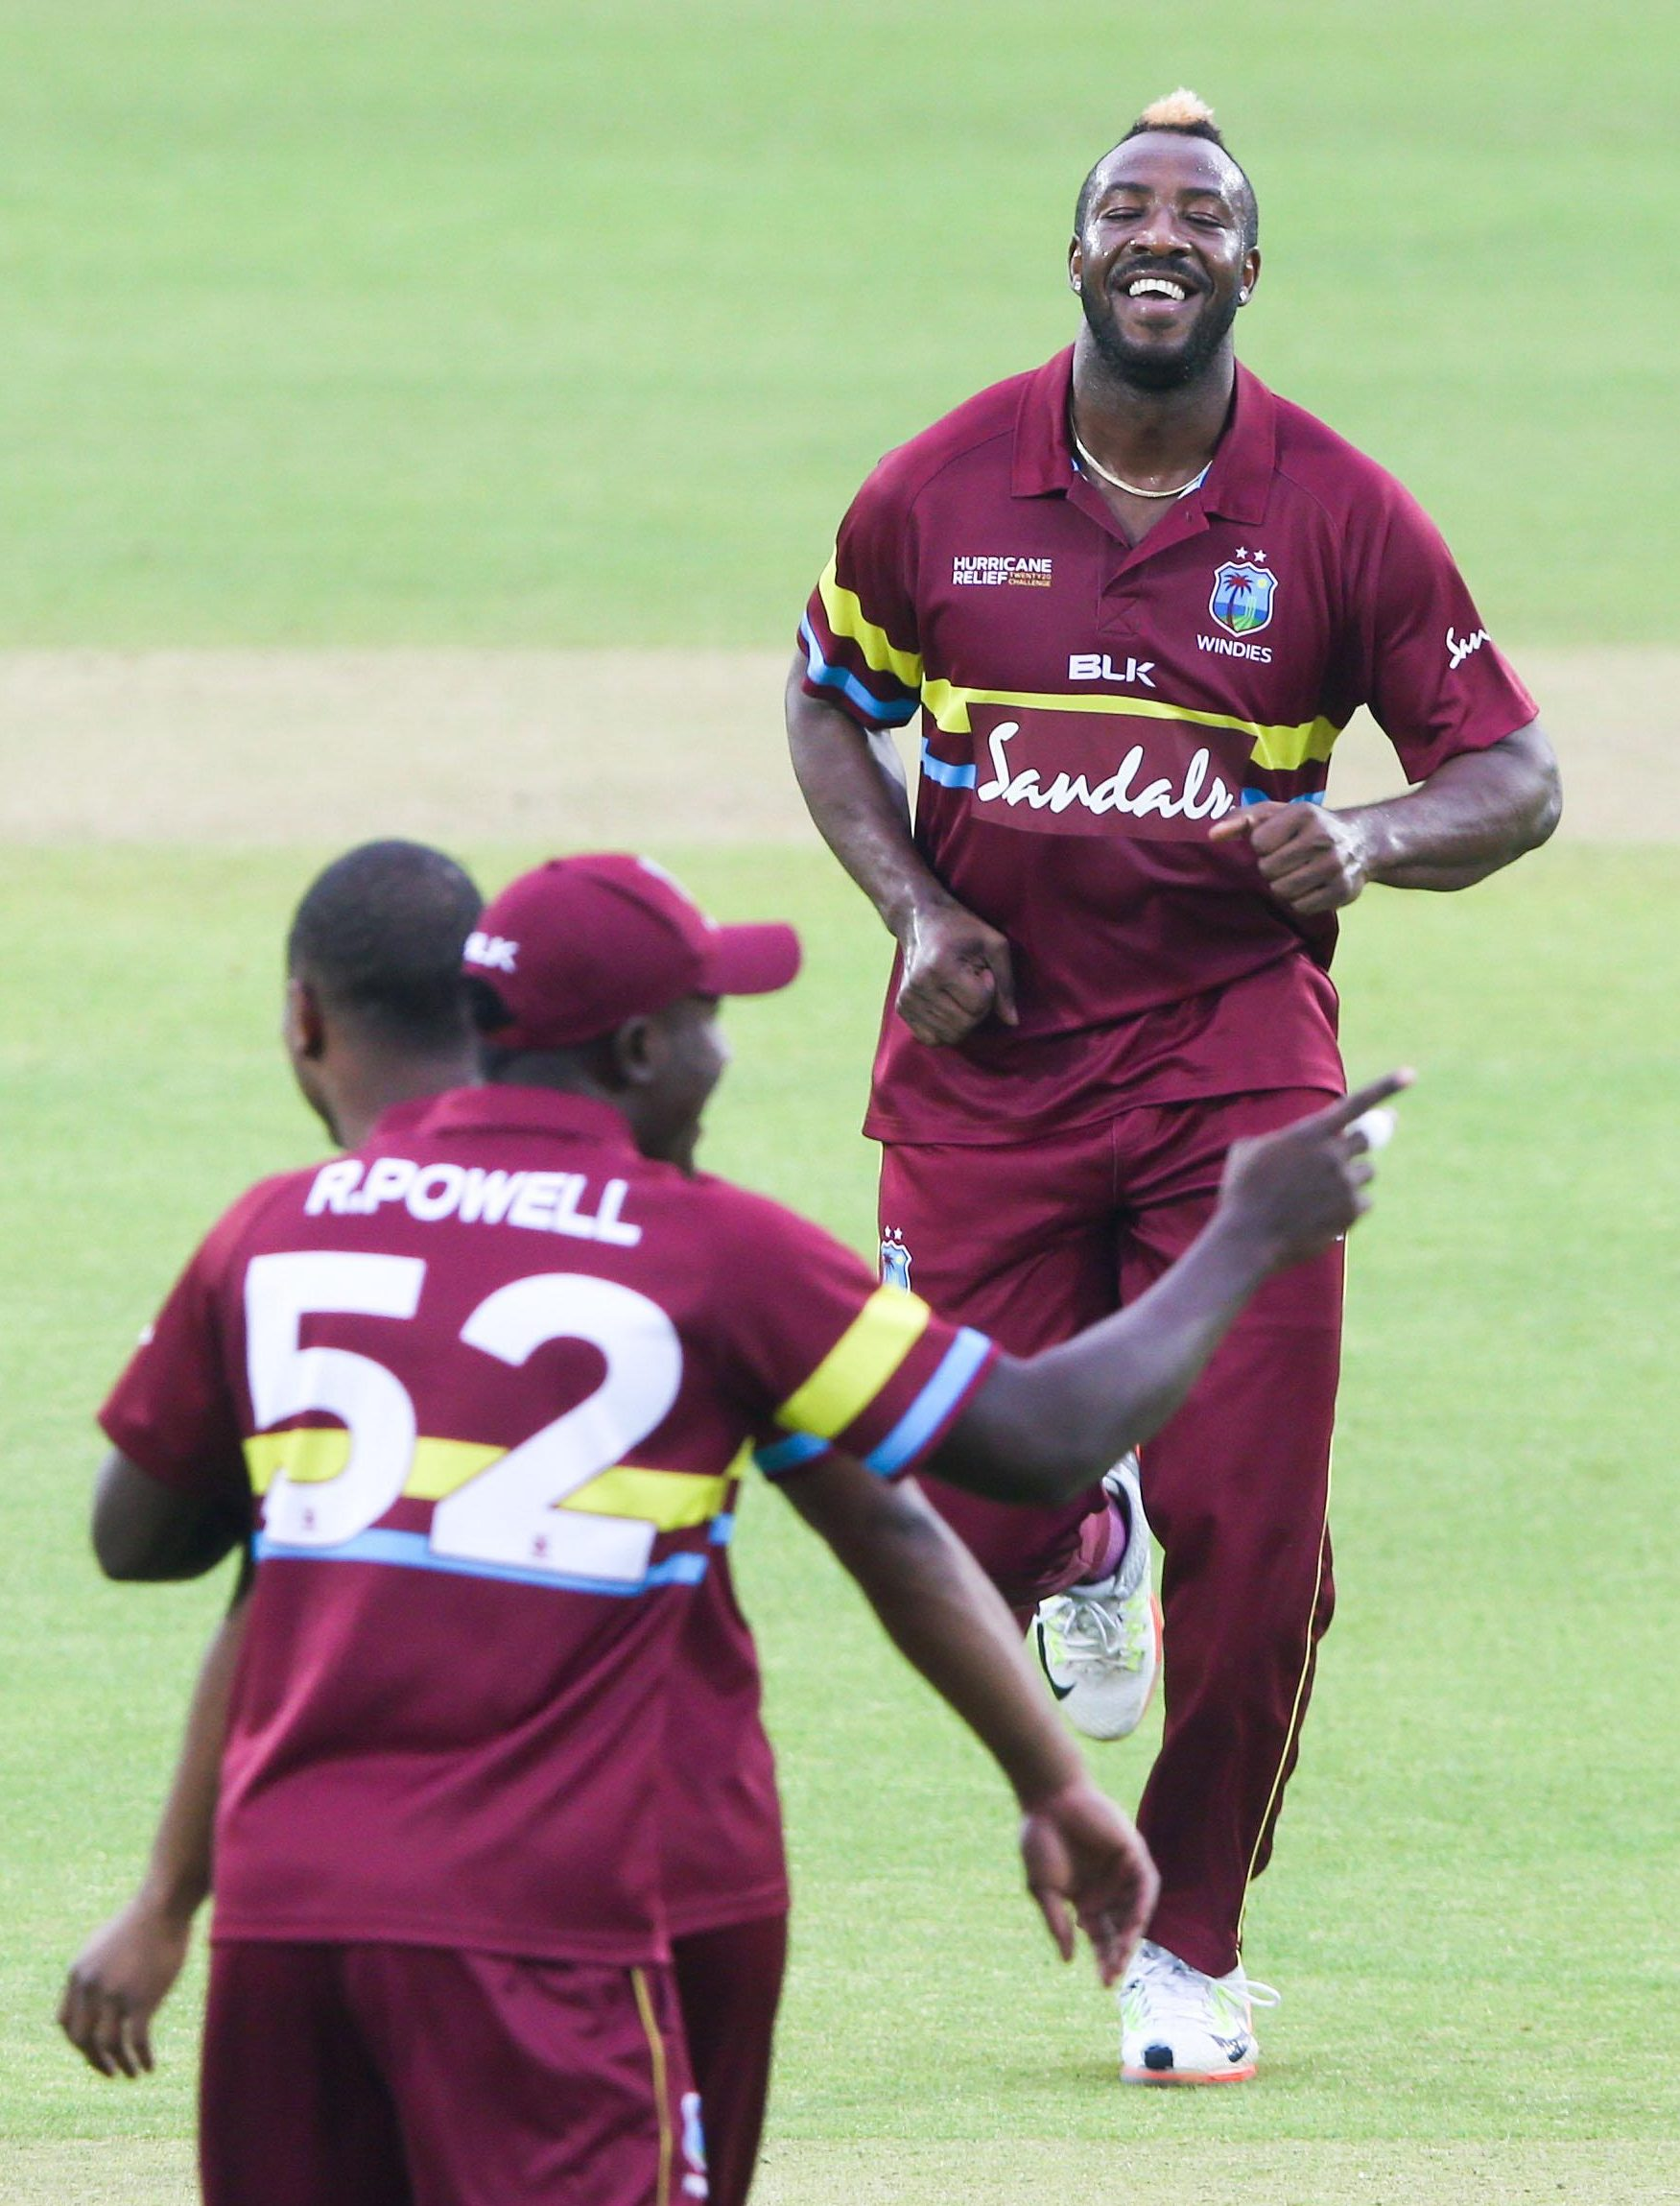 West Indies eased to victory in the hurricane relief challenge